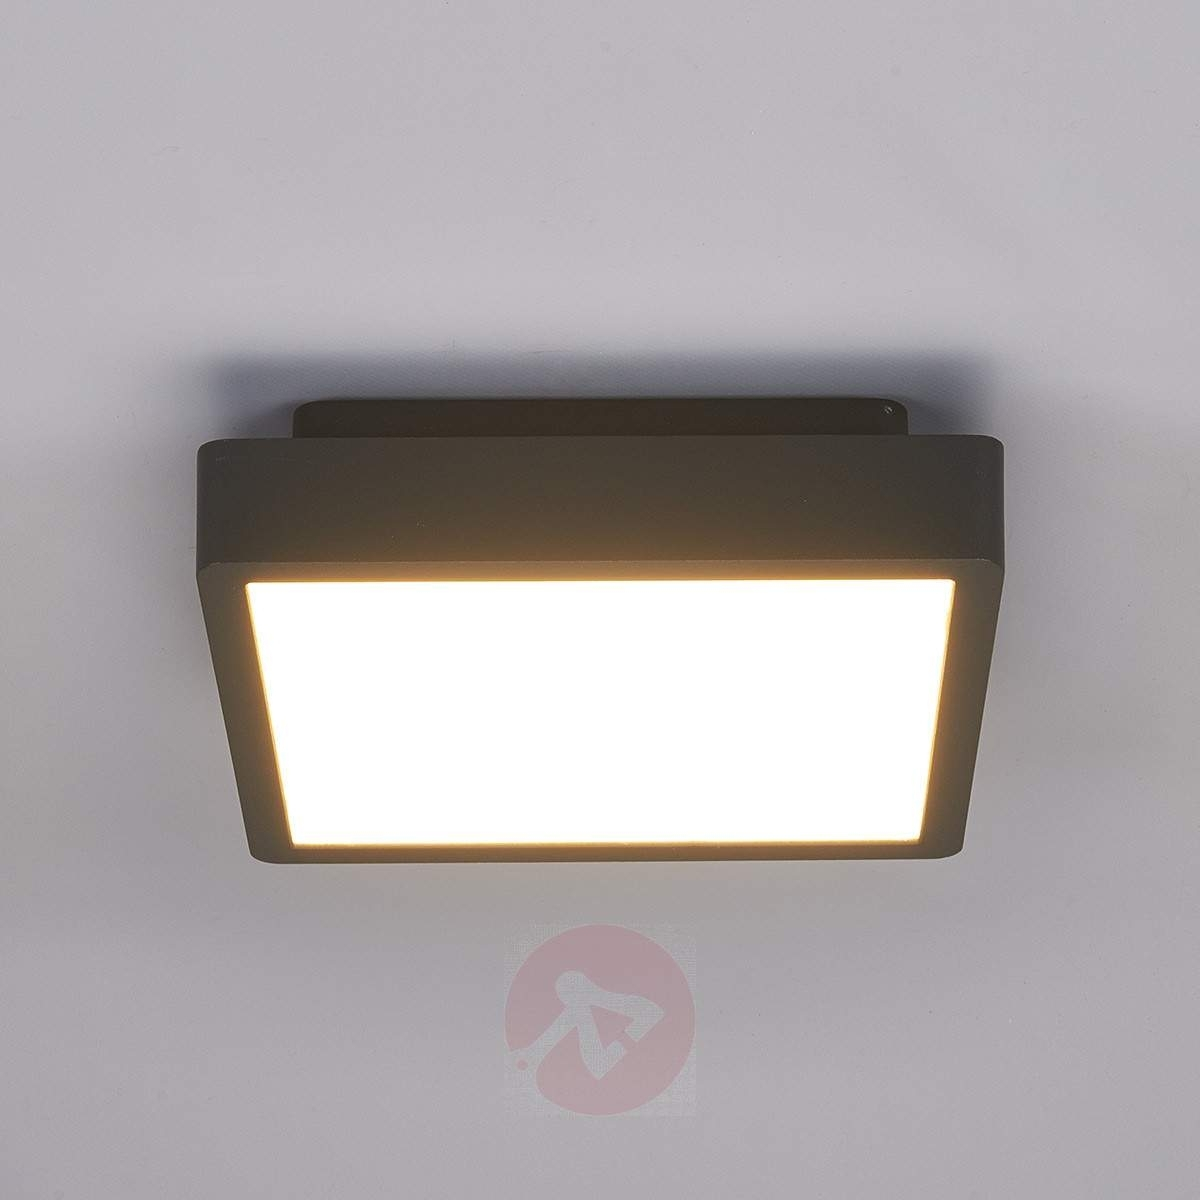 Popular Photo of Outdoor Ceiling Pir Lights